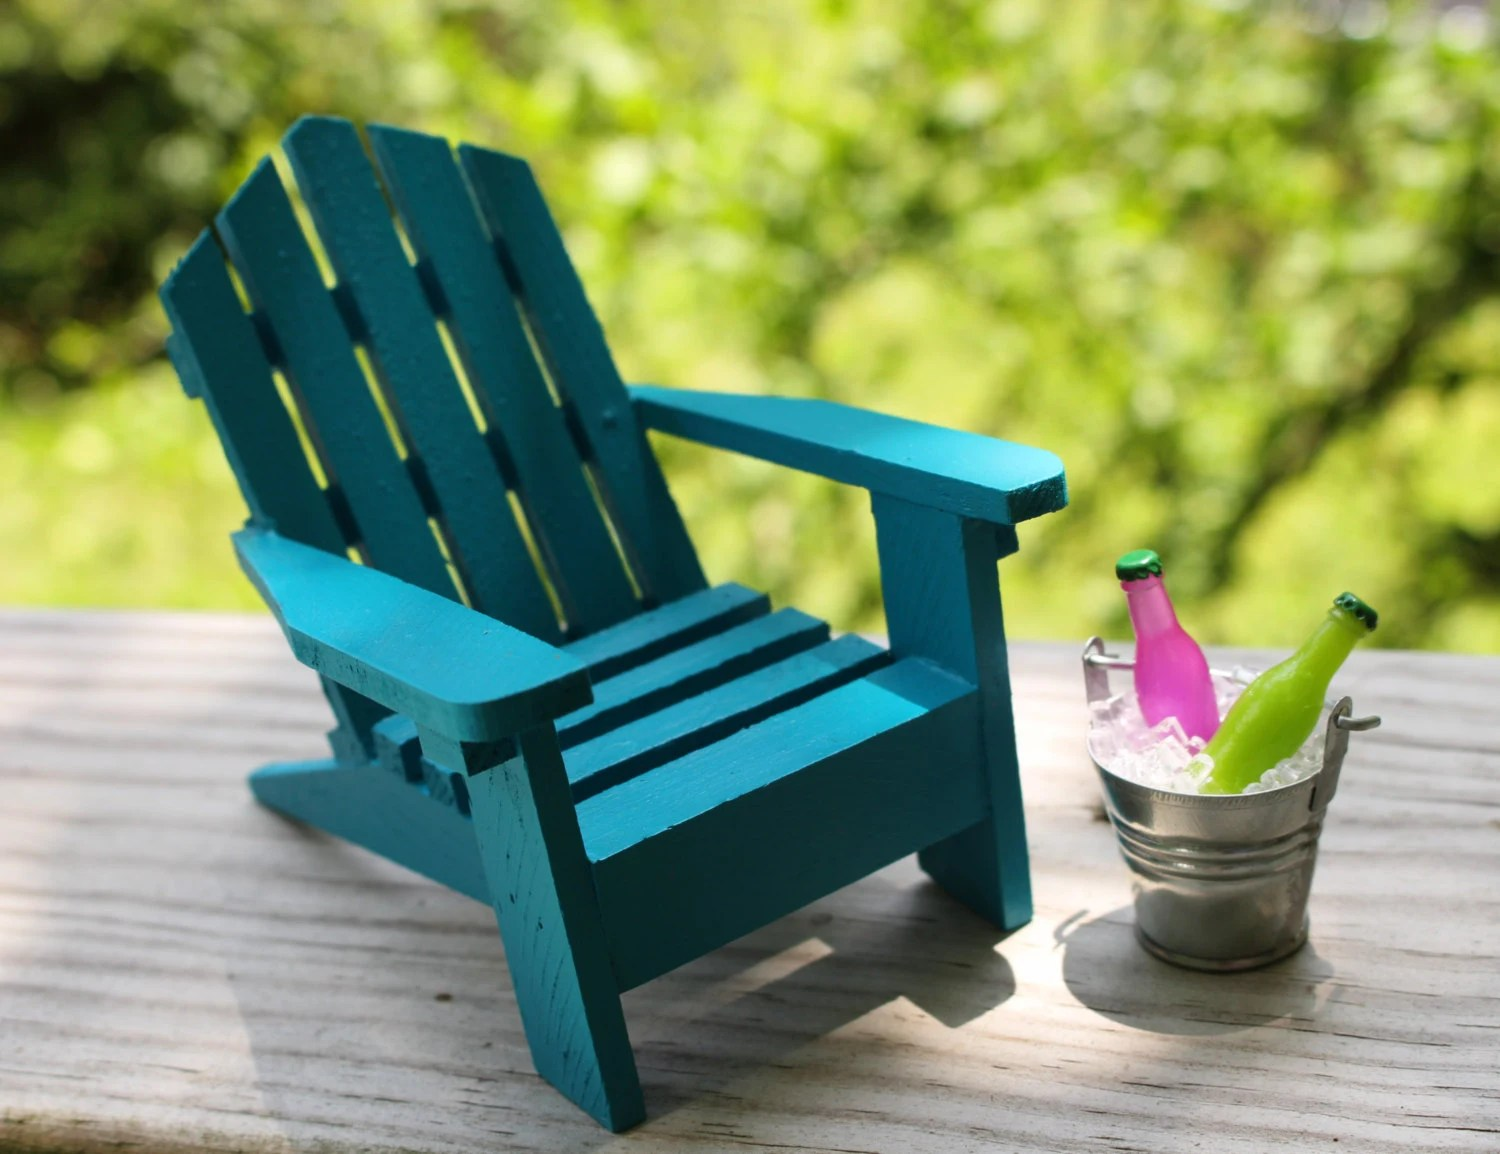 Mini Adirondack Chairs 1 Miniature Adirondack Chair Tin Bucket Ice And Soda Fairy